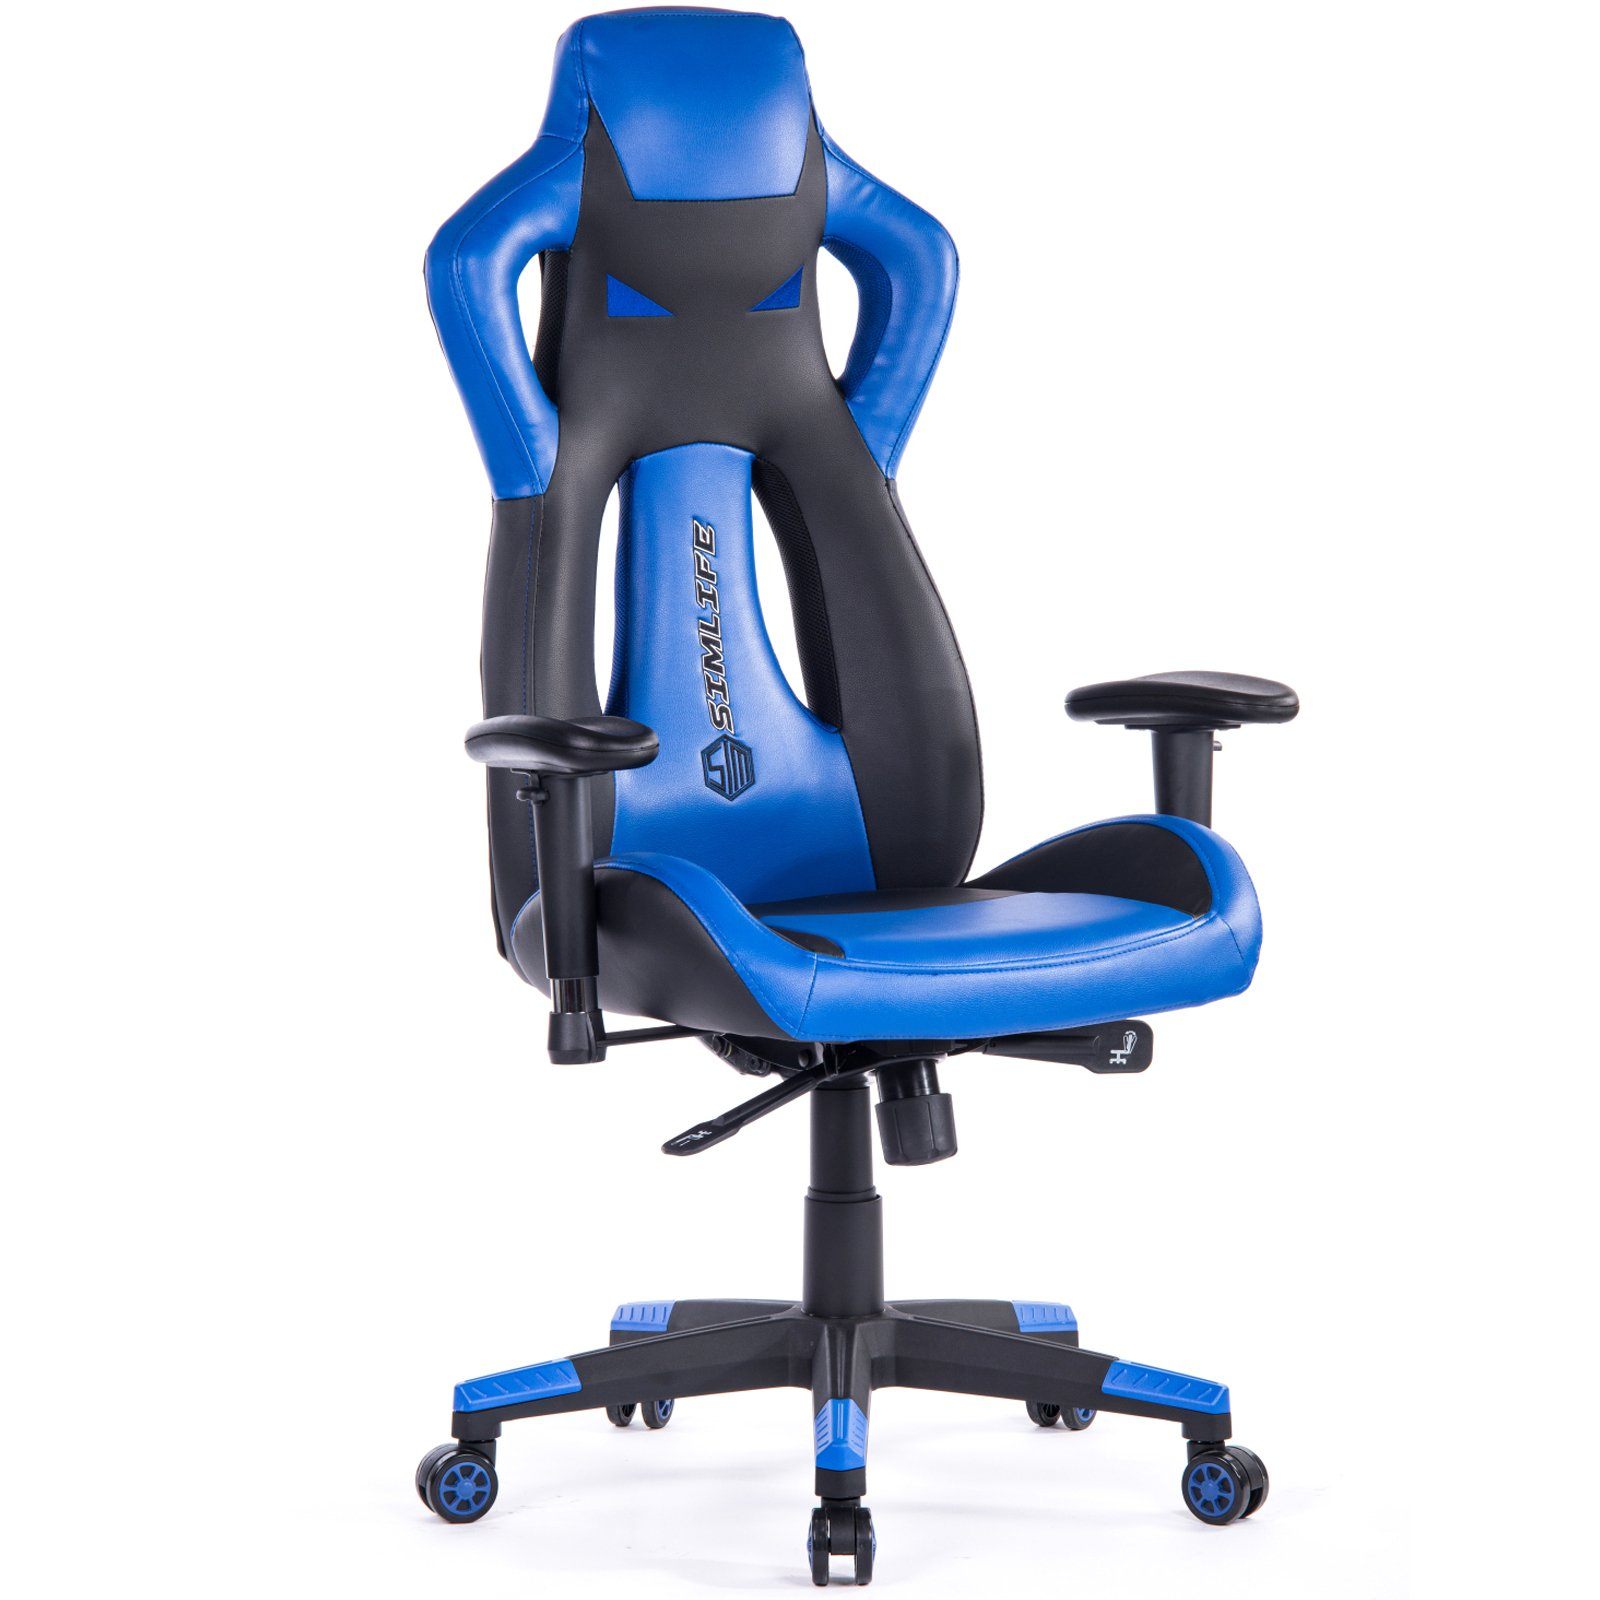 SimLife High-Back Gaming Racing Swivel Chair PU Leather Executive Office Computer Desk Task Chair Blue